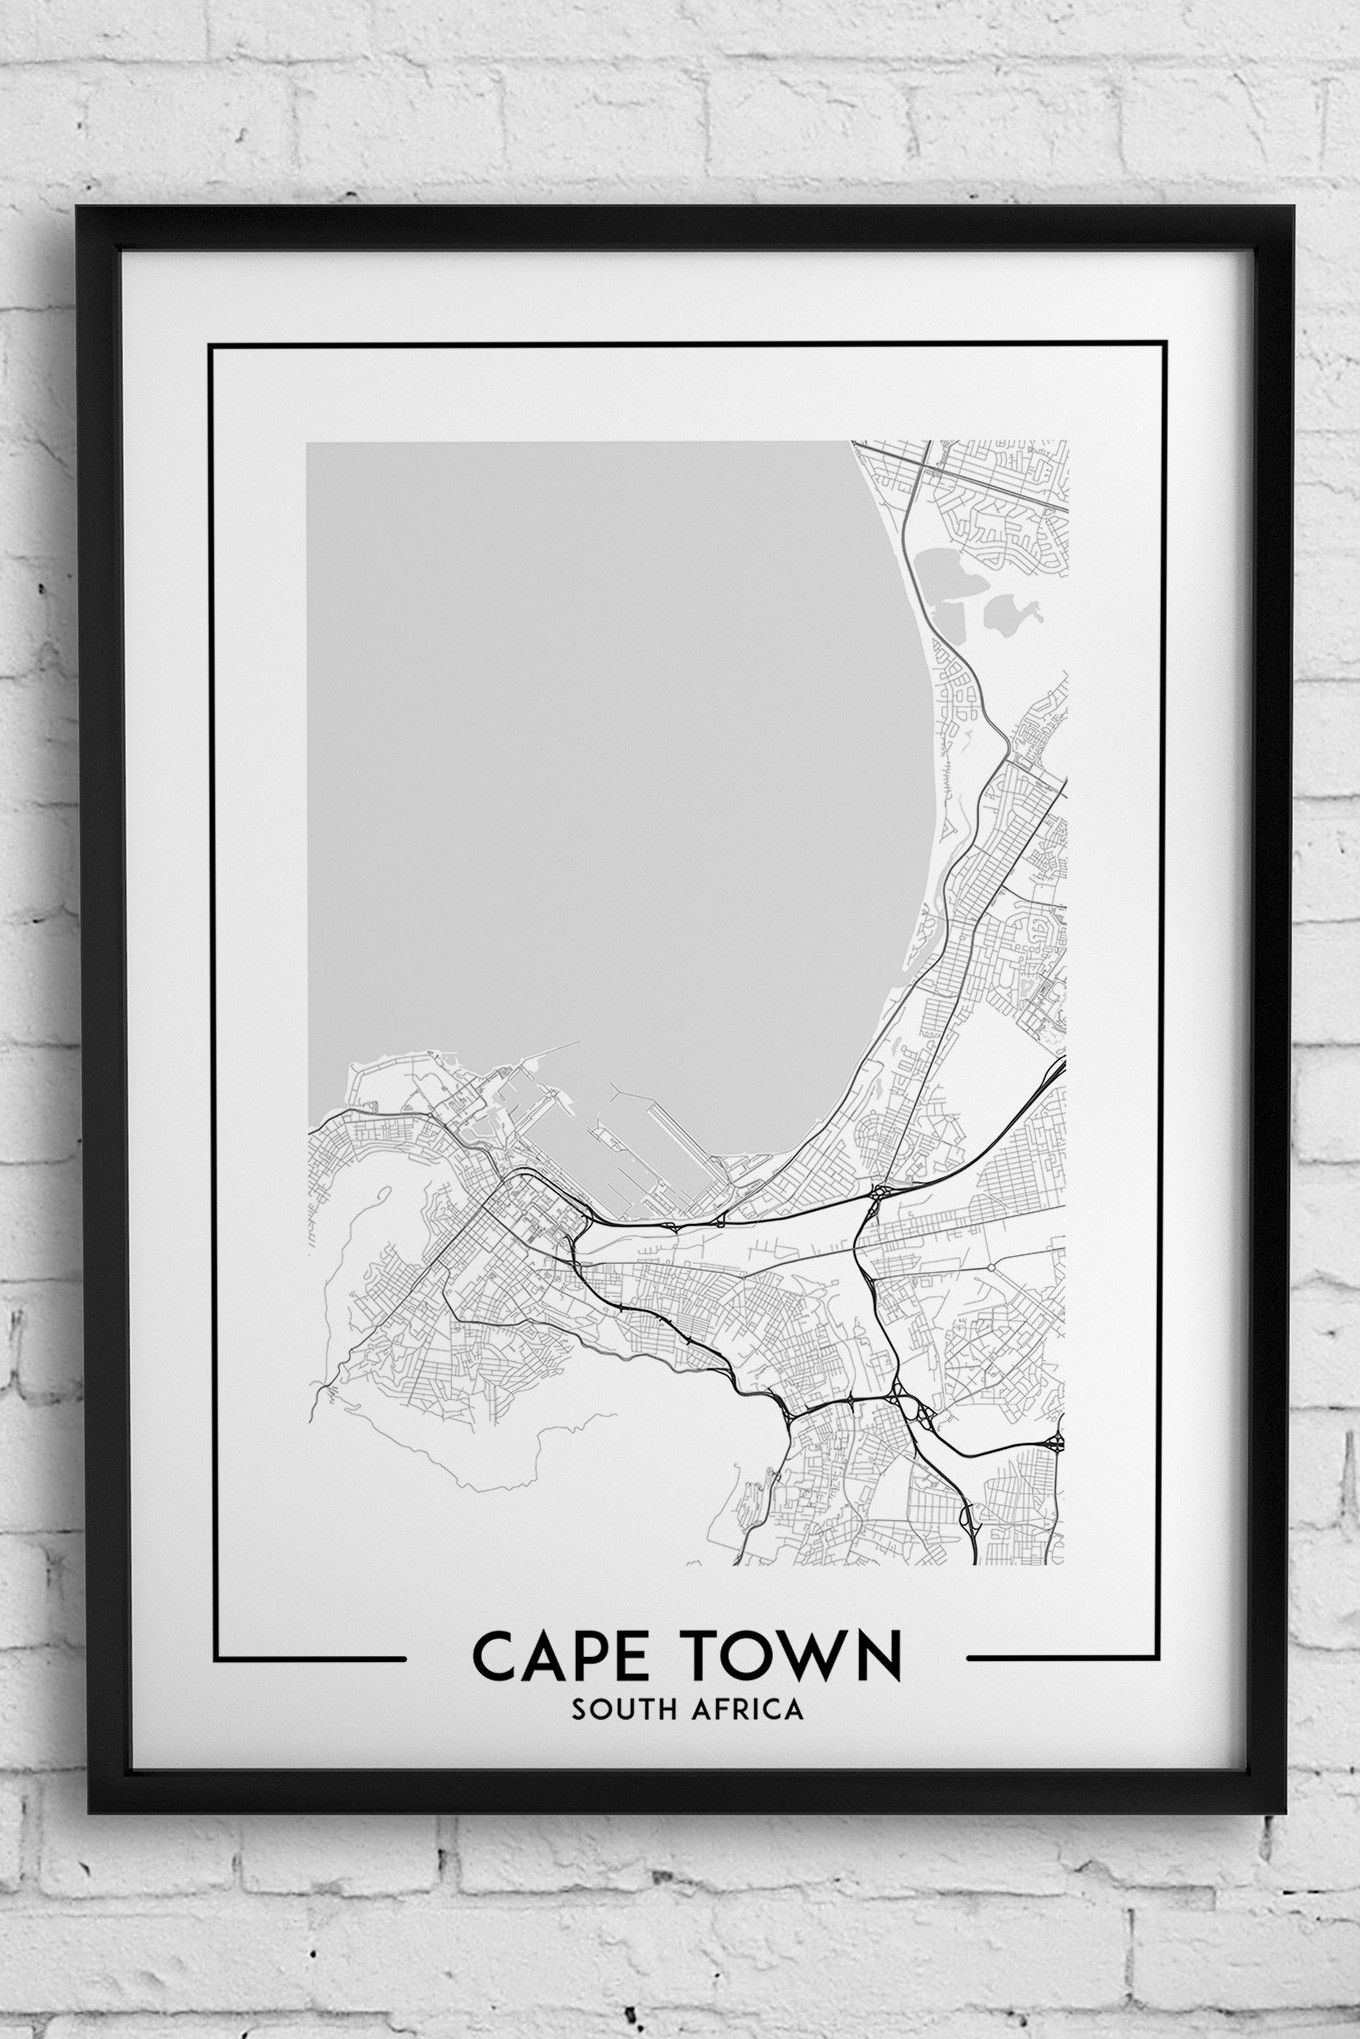 Cape Town South Africa Map Poster Black White Wall Decor Etsy Map Poster City Map Poster Map Wall Decor